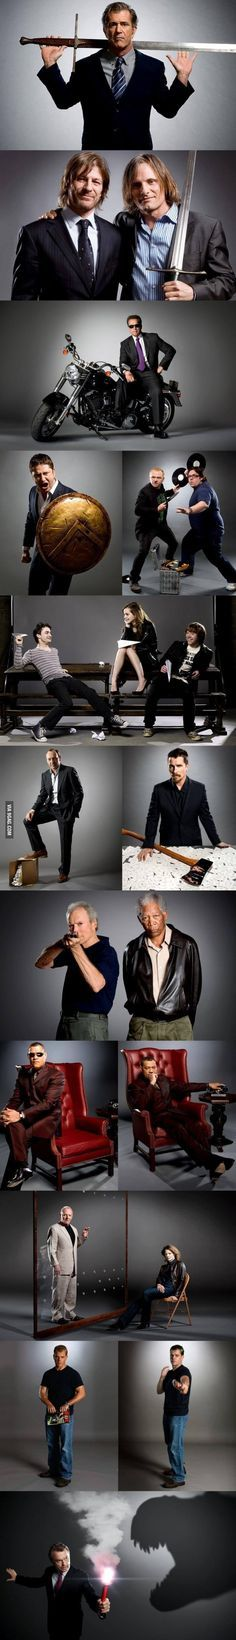 Actors recalling their best roles . . . in order: Braveheart, LOTR Fellowship, Terminator 2, 300, Shaun of The Dead, Harry Potter Saga, Se7en, American Psycho, Unforgiven, The Matrix, Silence of The Lambs, Bourne Identity, and Jurassic Park